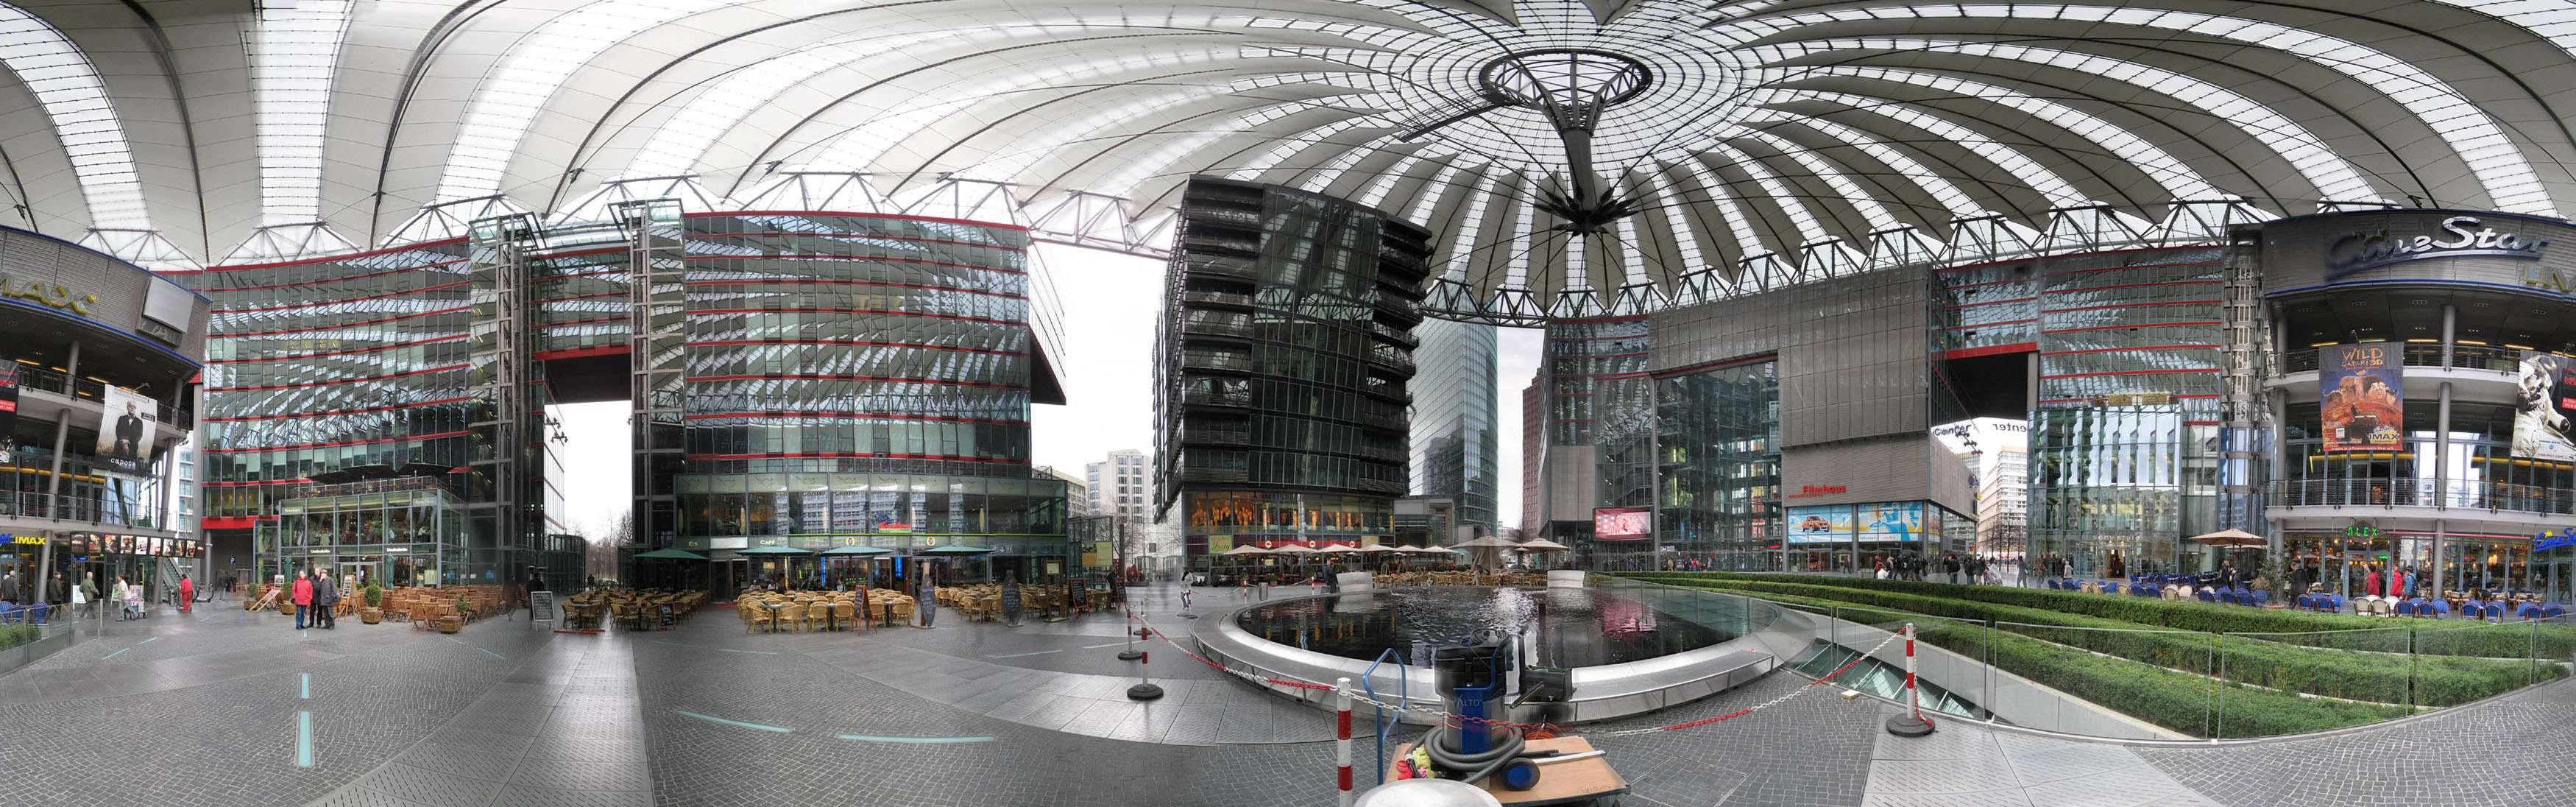 sony center 360 panorama photo